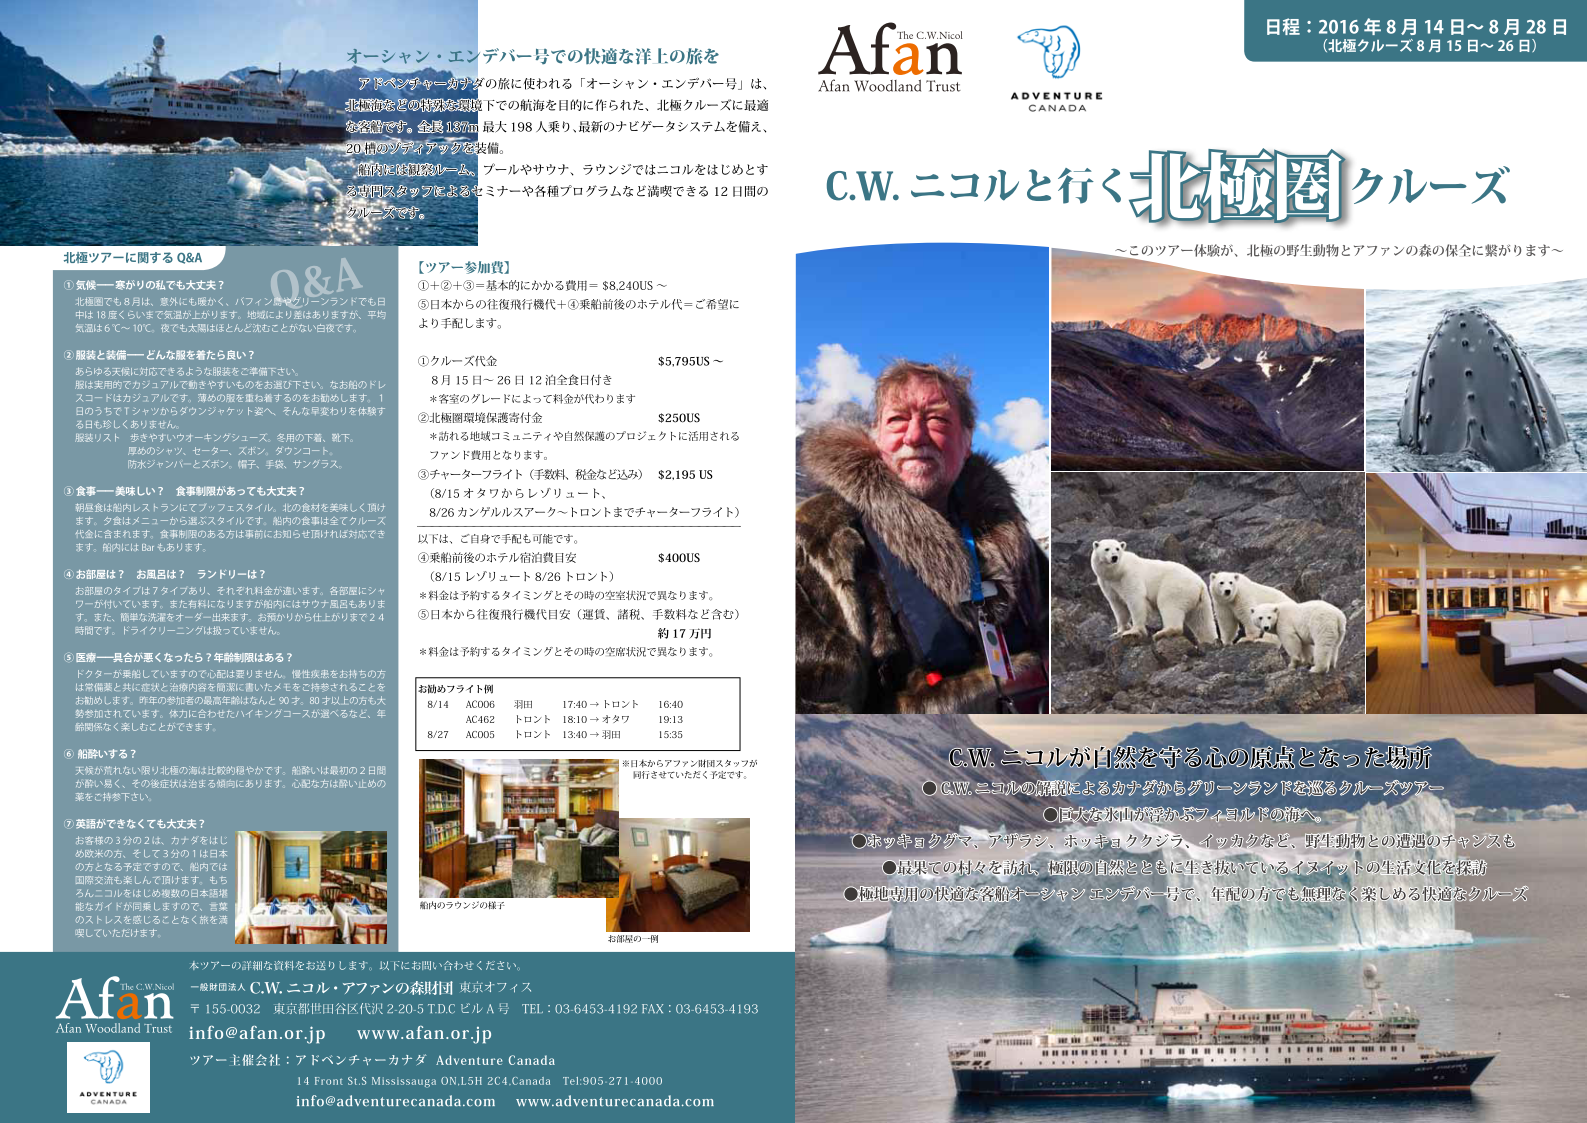 https://afan.or.jp/wp/wp-content/uploads/old/2016_pic/20160330_northpole_tures1.png